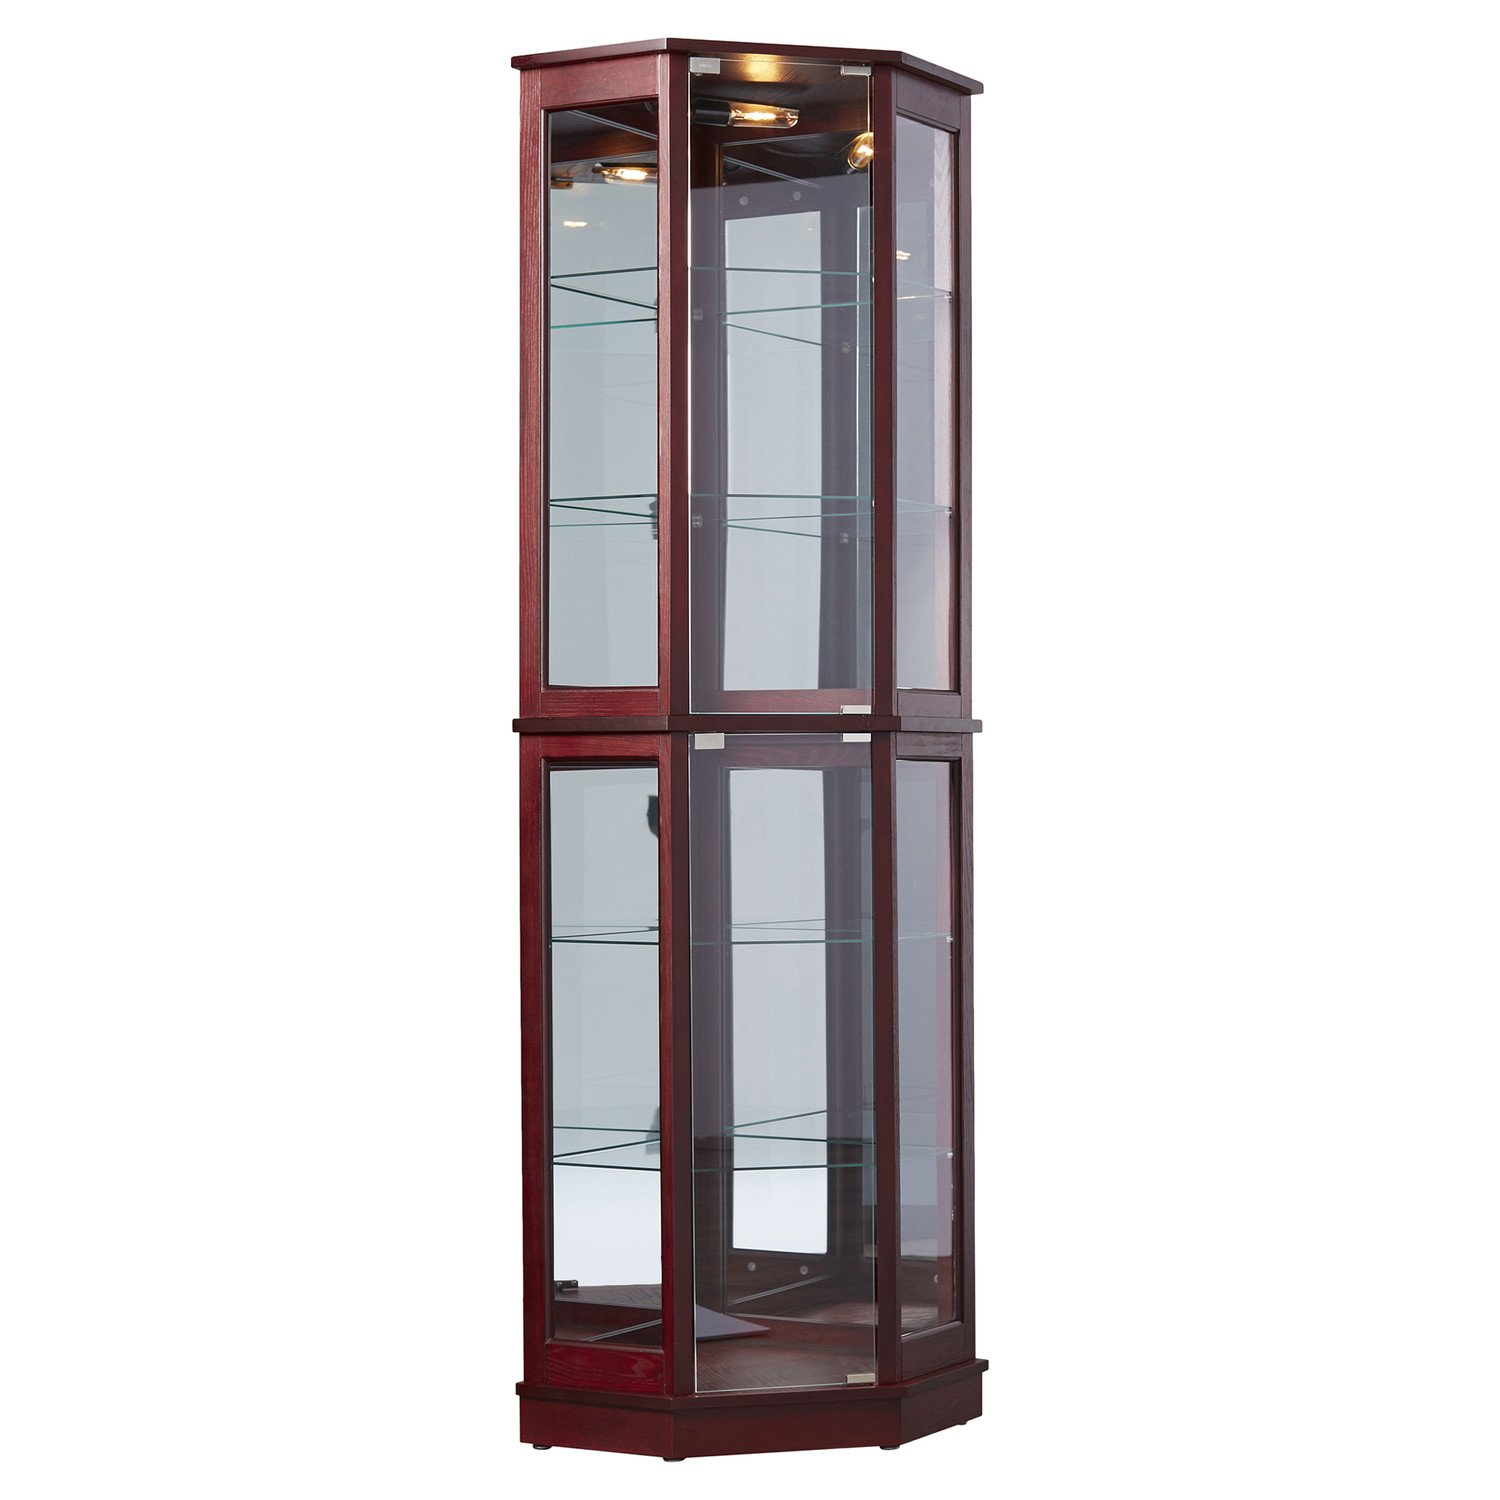 Tall Lighted Corner Curio Cabinet - Corner Hutch for Collectibles, China or as a Liquor Cabinet - Display Case with 2 Shelf Platforms, 4 Adjustable and Removable Glass Shelves and Mirrored Back